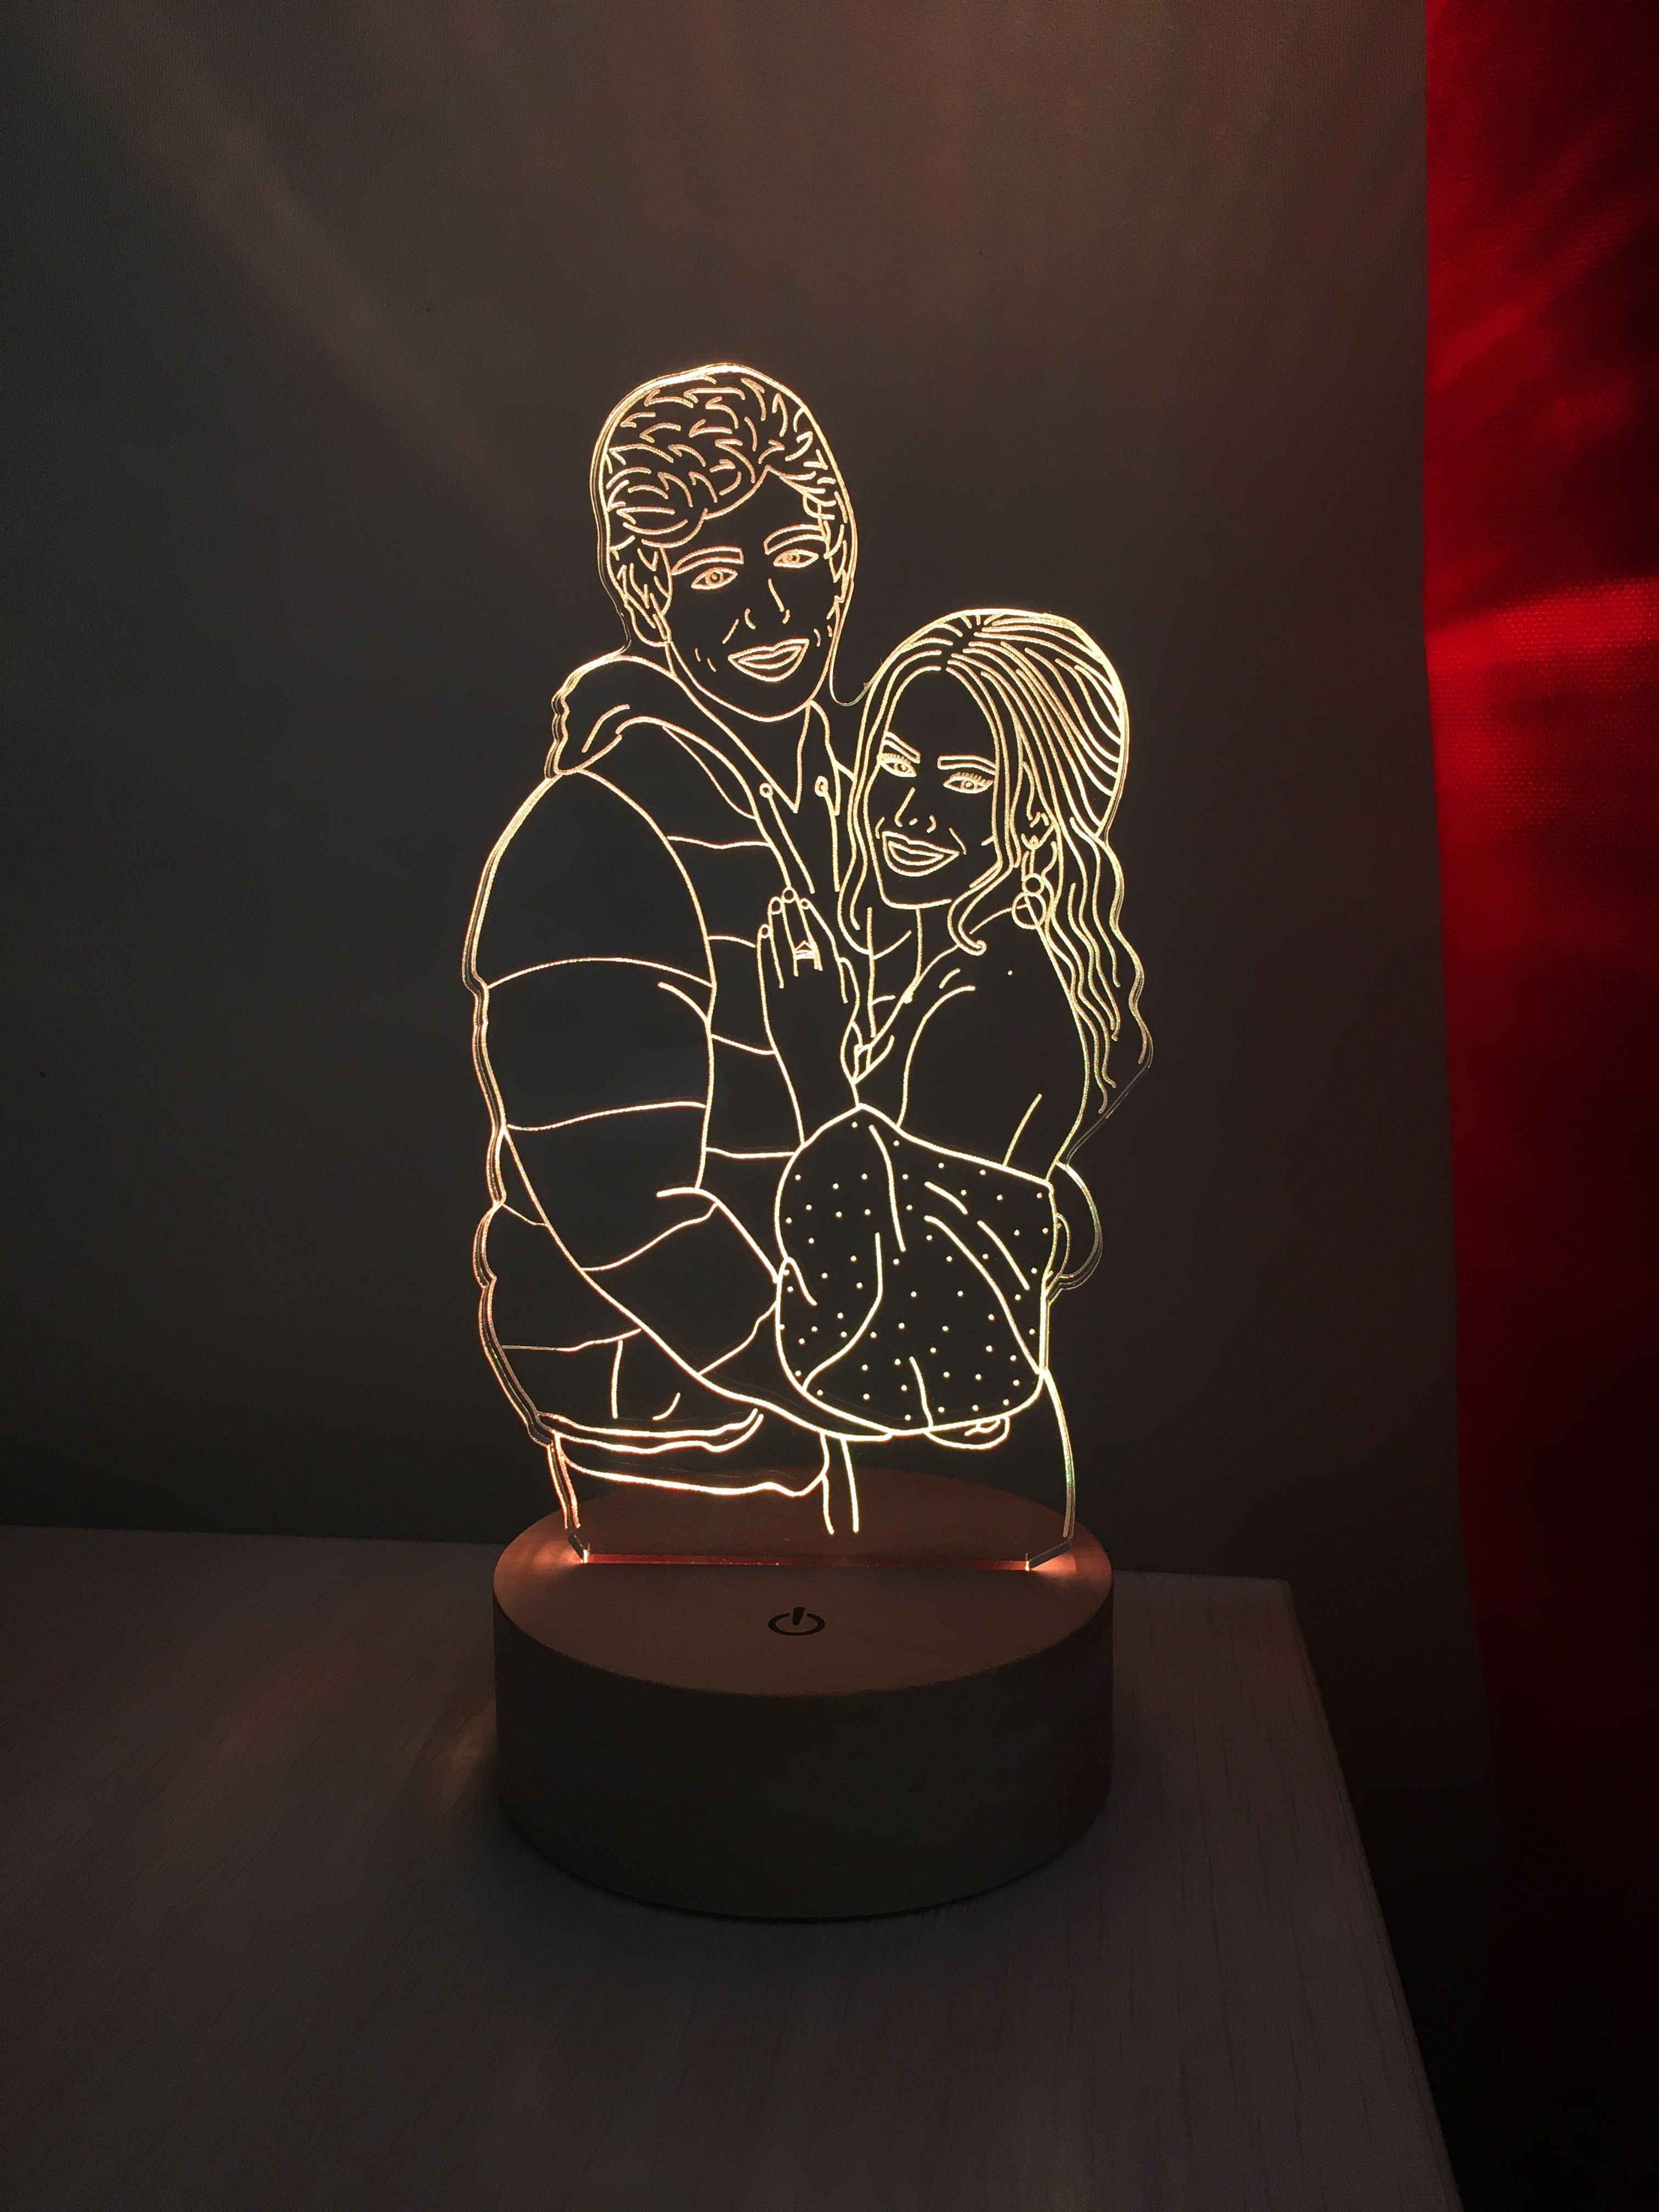 Custom Led Lamp Drawing From Photo Couple Light Nightlight Etsy In 2020 Personalized Photo Gifts Photo Lamp Gifts